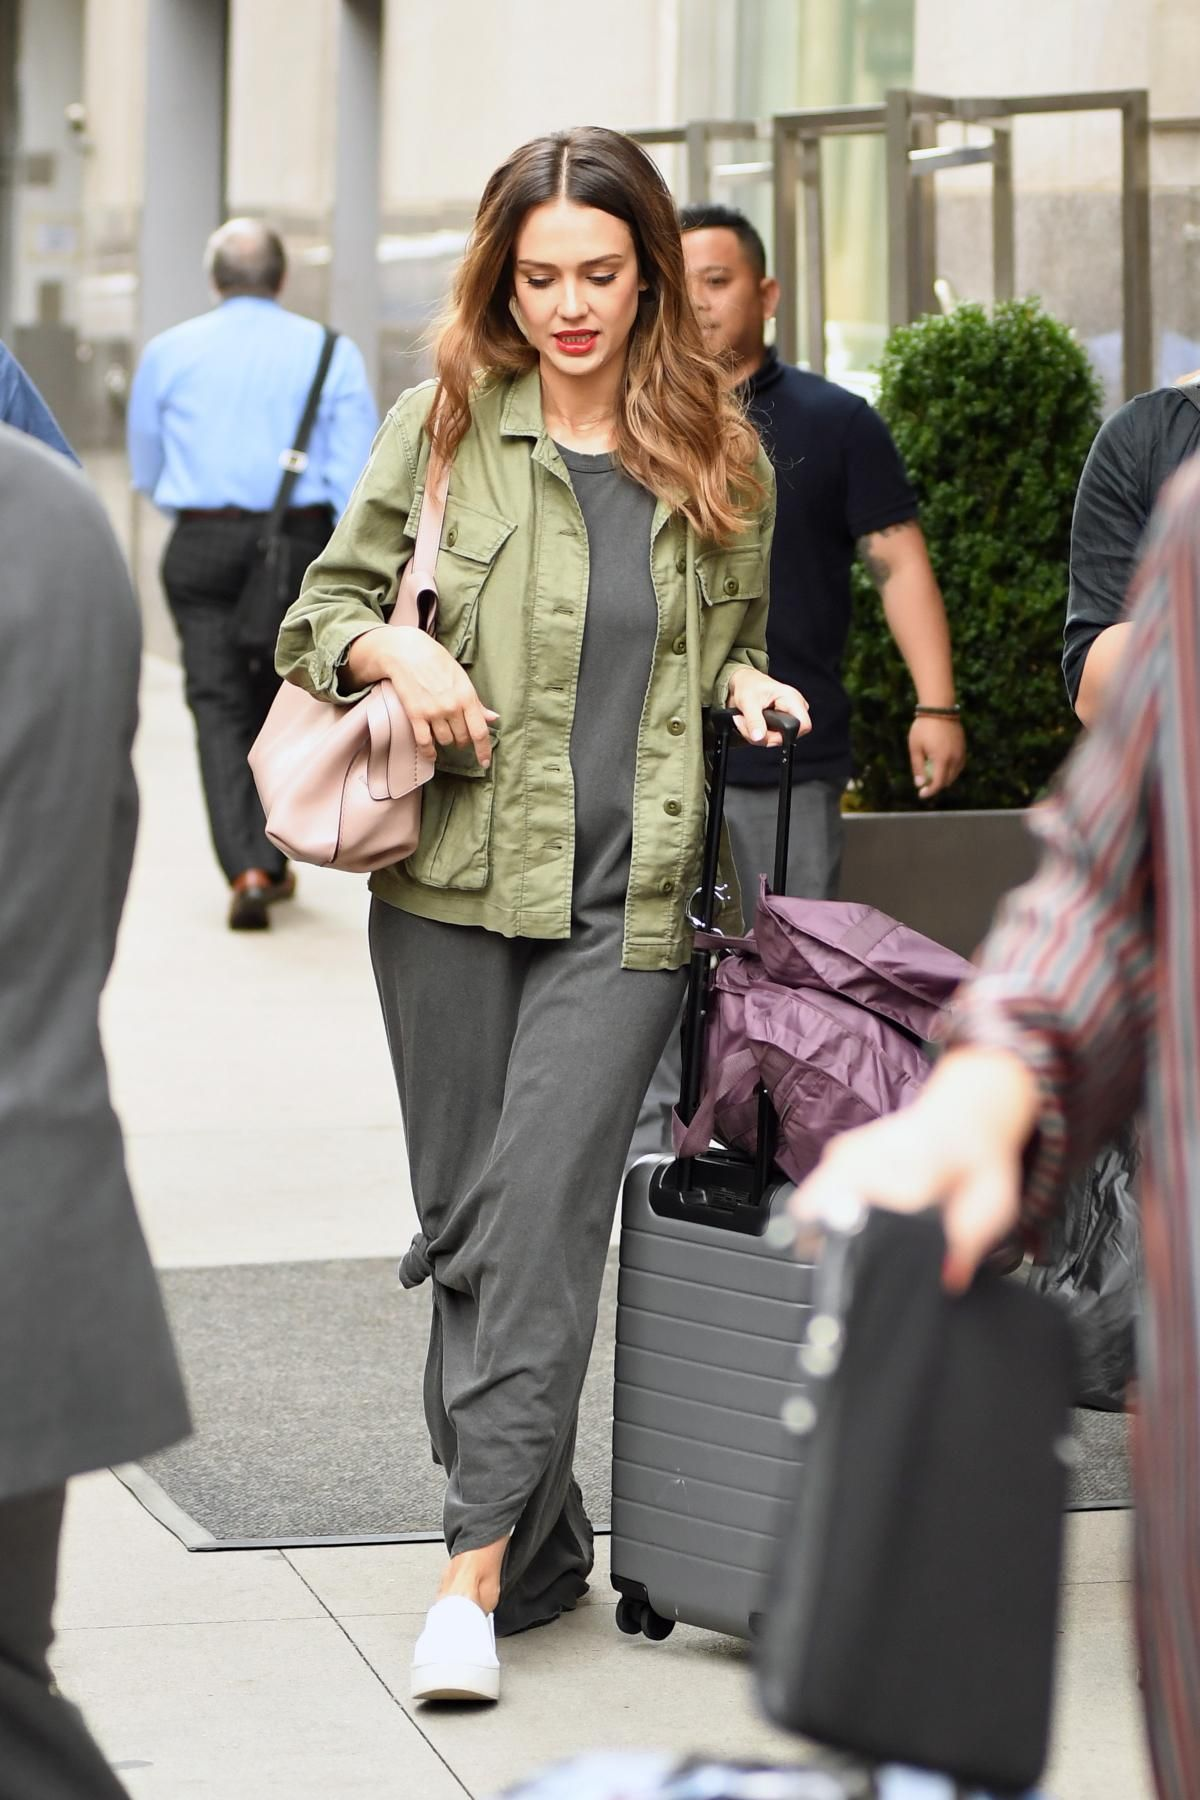 b165d93d45 Jessica Alba wearing Vince Warren Leather Sneakers, Away Carry-on Luggage,  The Great. Knotted Tee Dress, Tod's Wave Bag in Pink and The Great.